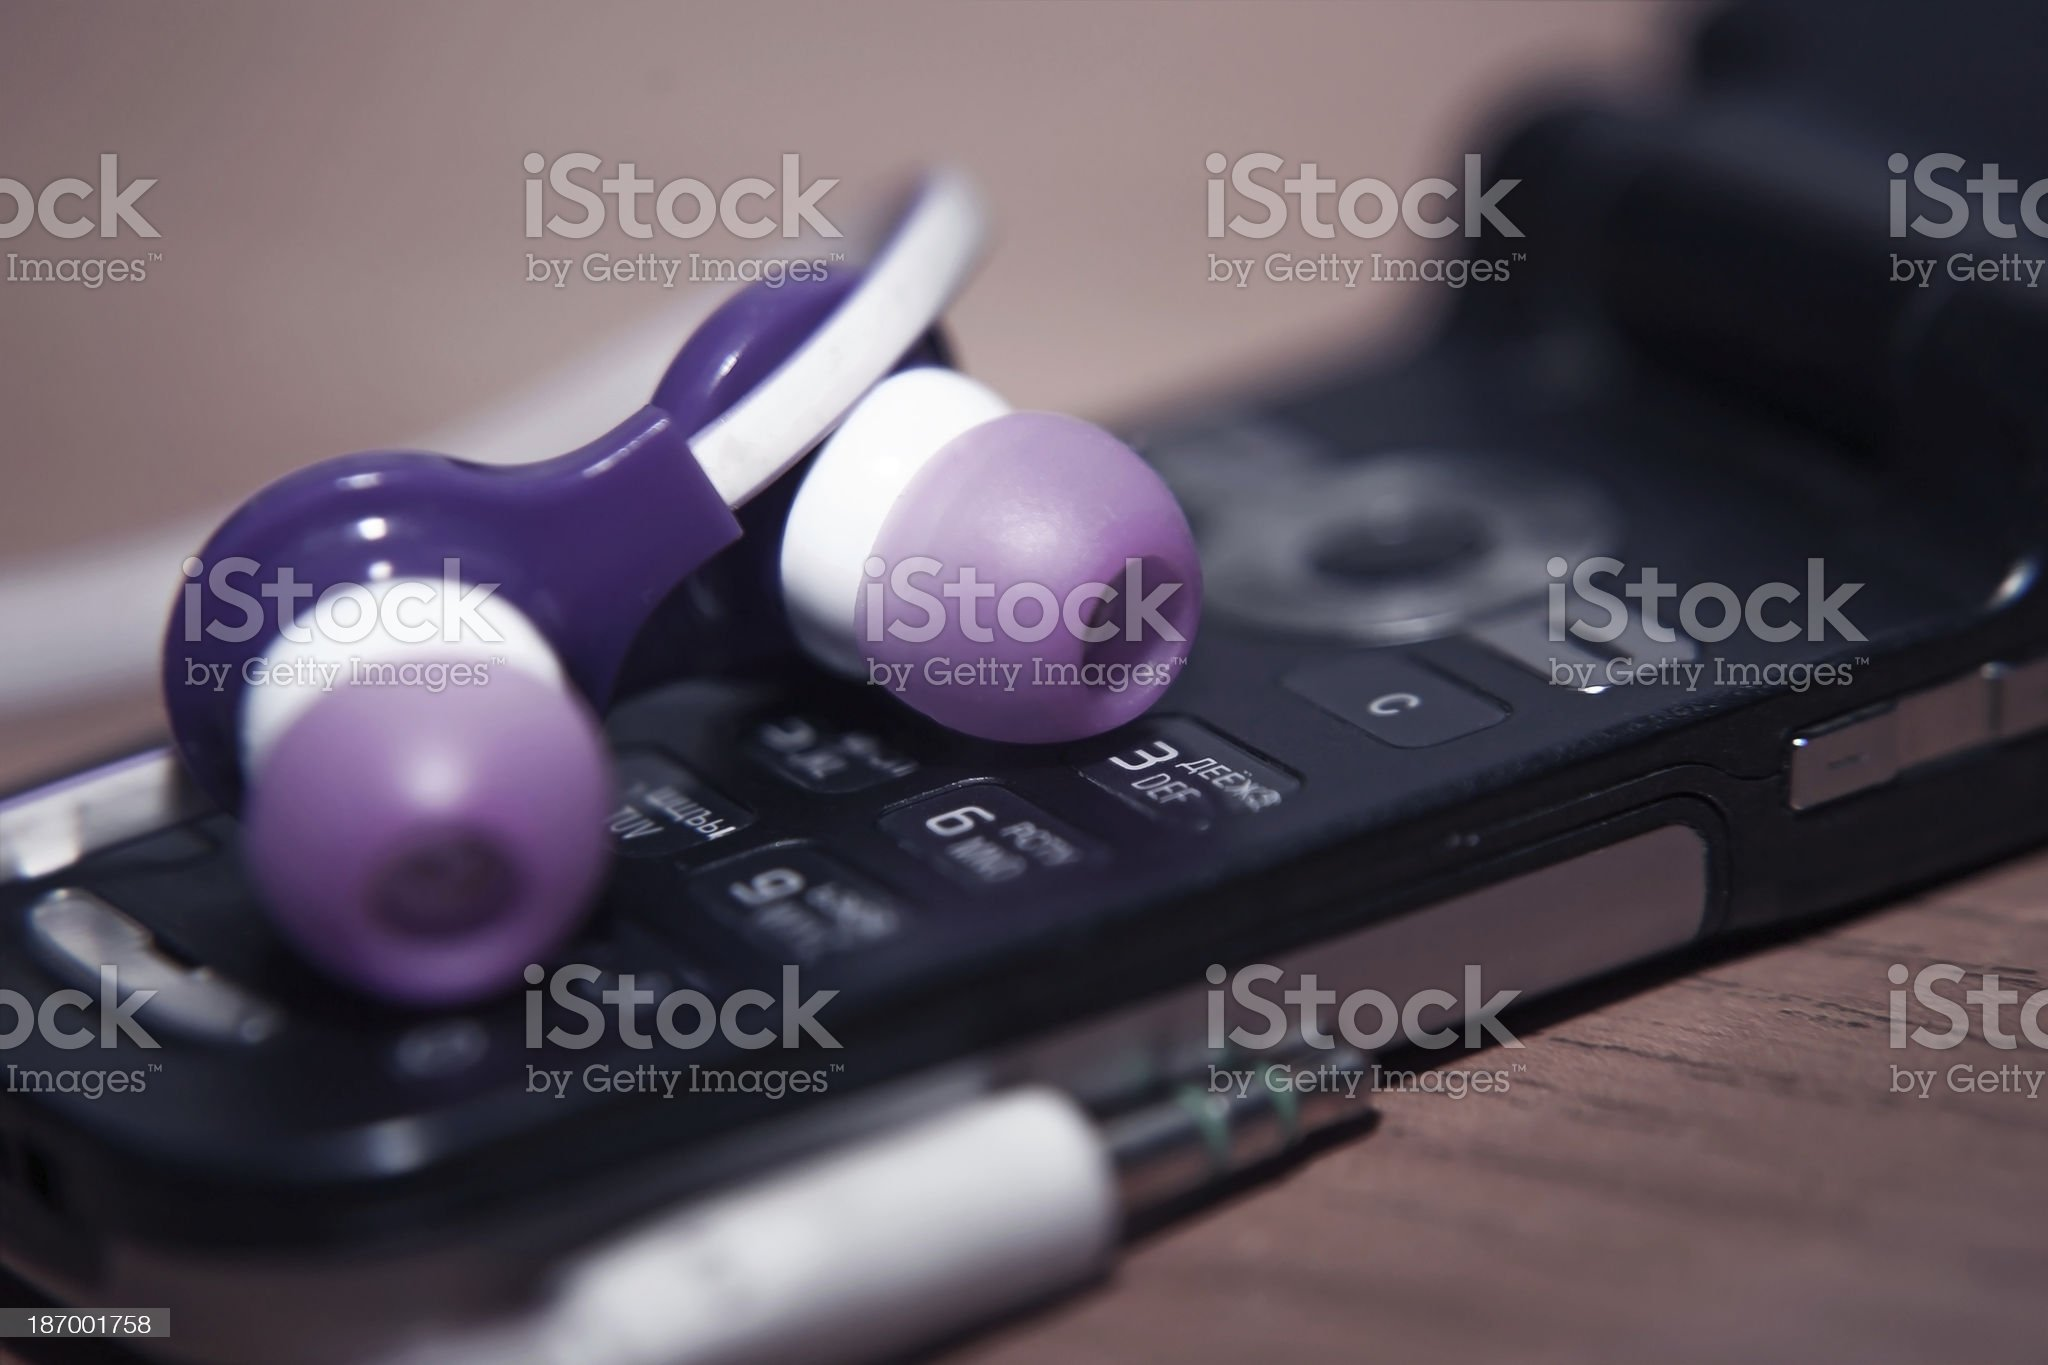 background music lover royalty-free stock photo